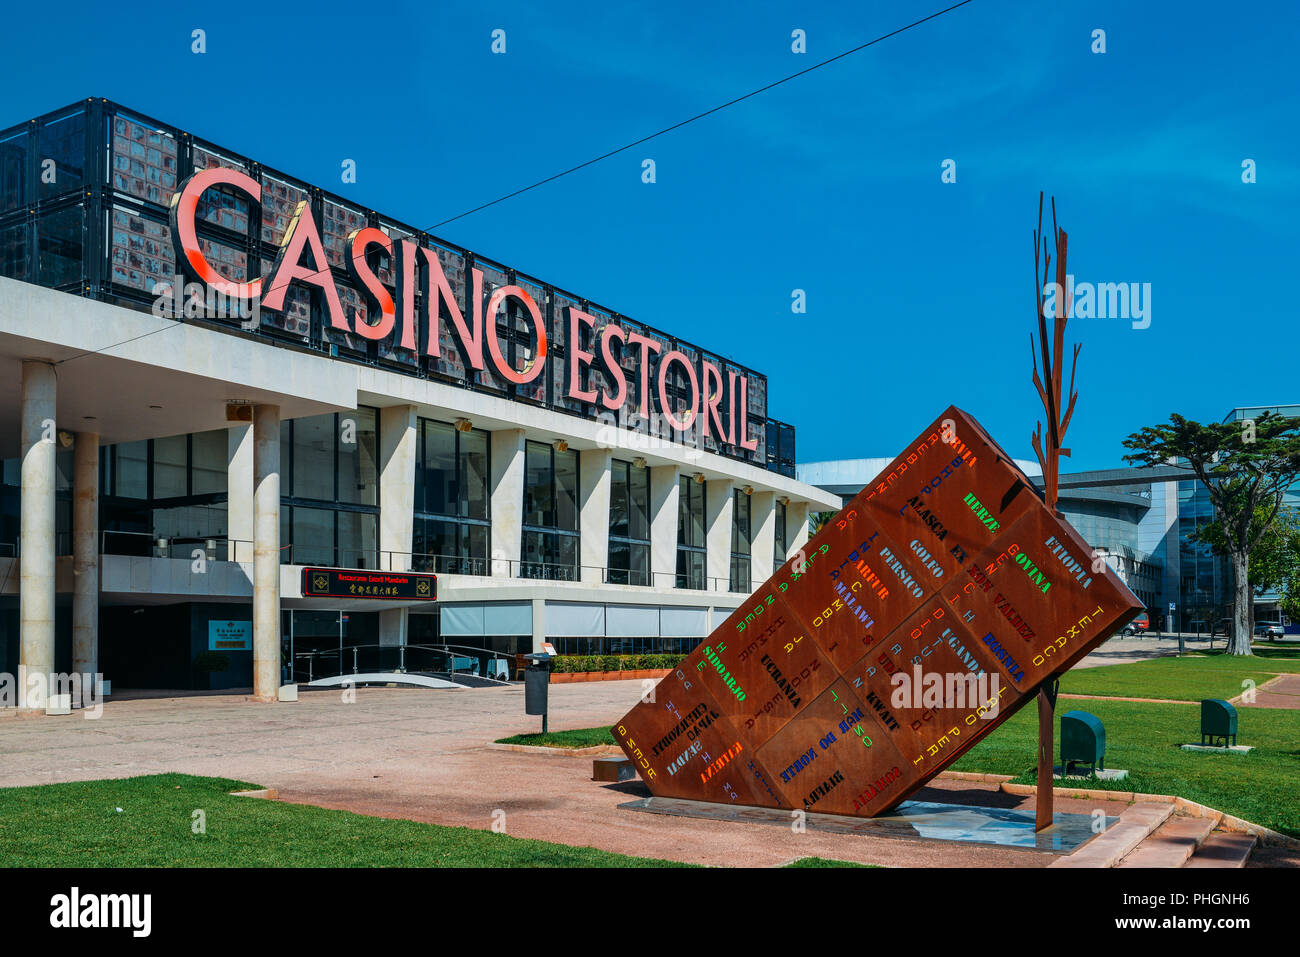 Estoril, Portugal - August 30th, 2018: Facade of the Casino Estoril in Estoril city, just outside of Lisbon. One of the largest casinos in Europe Stock Photo